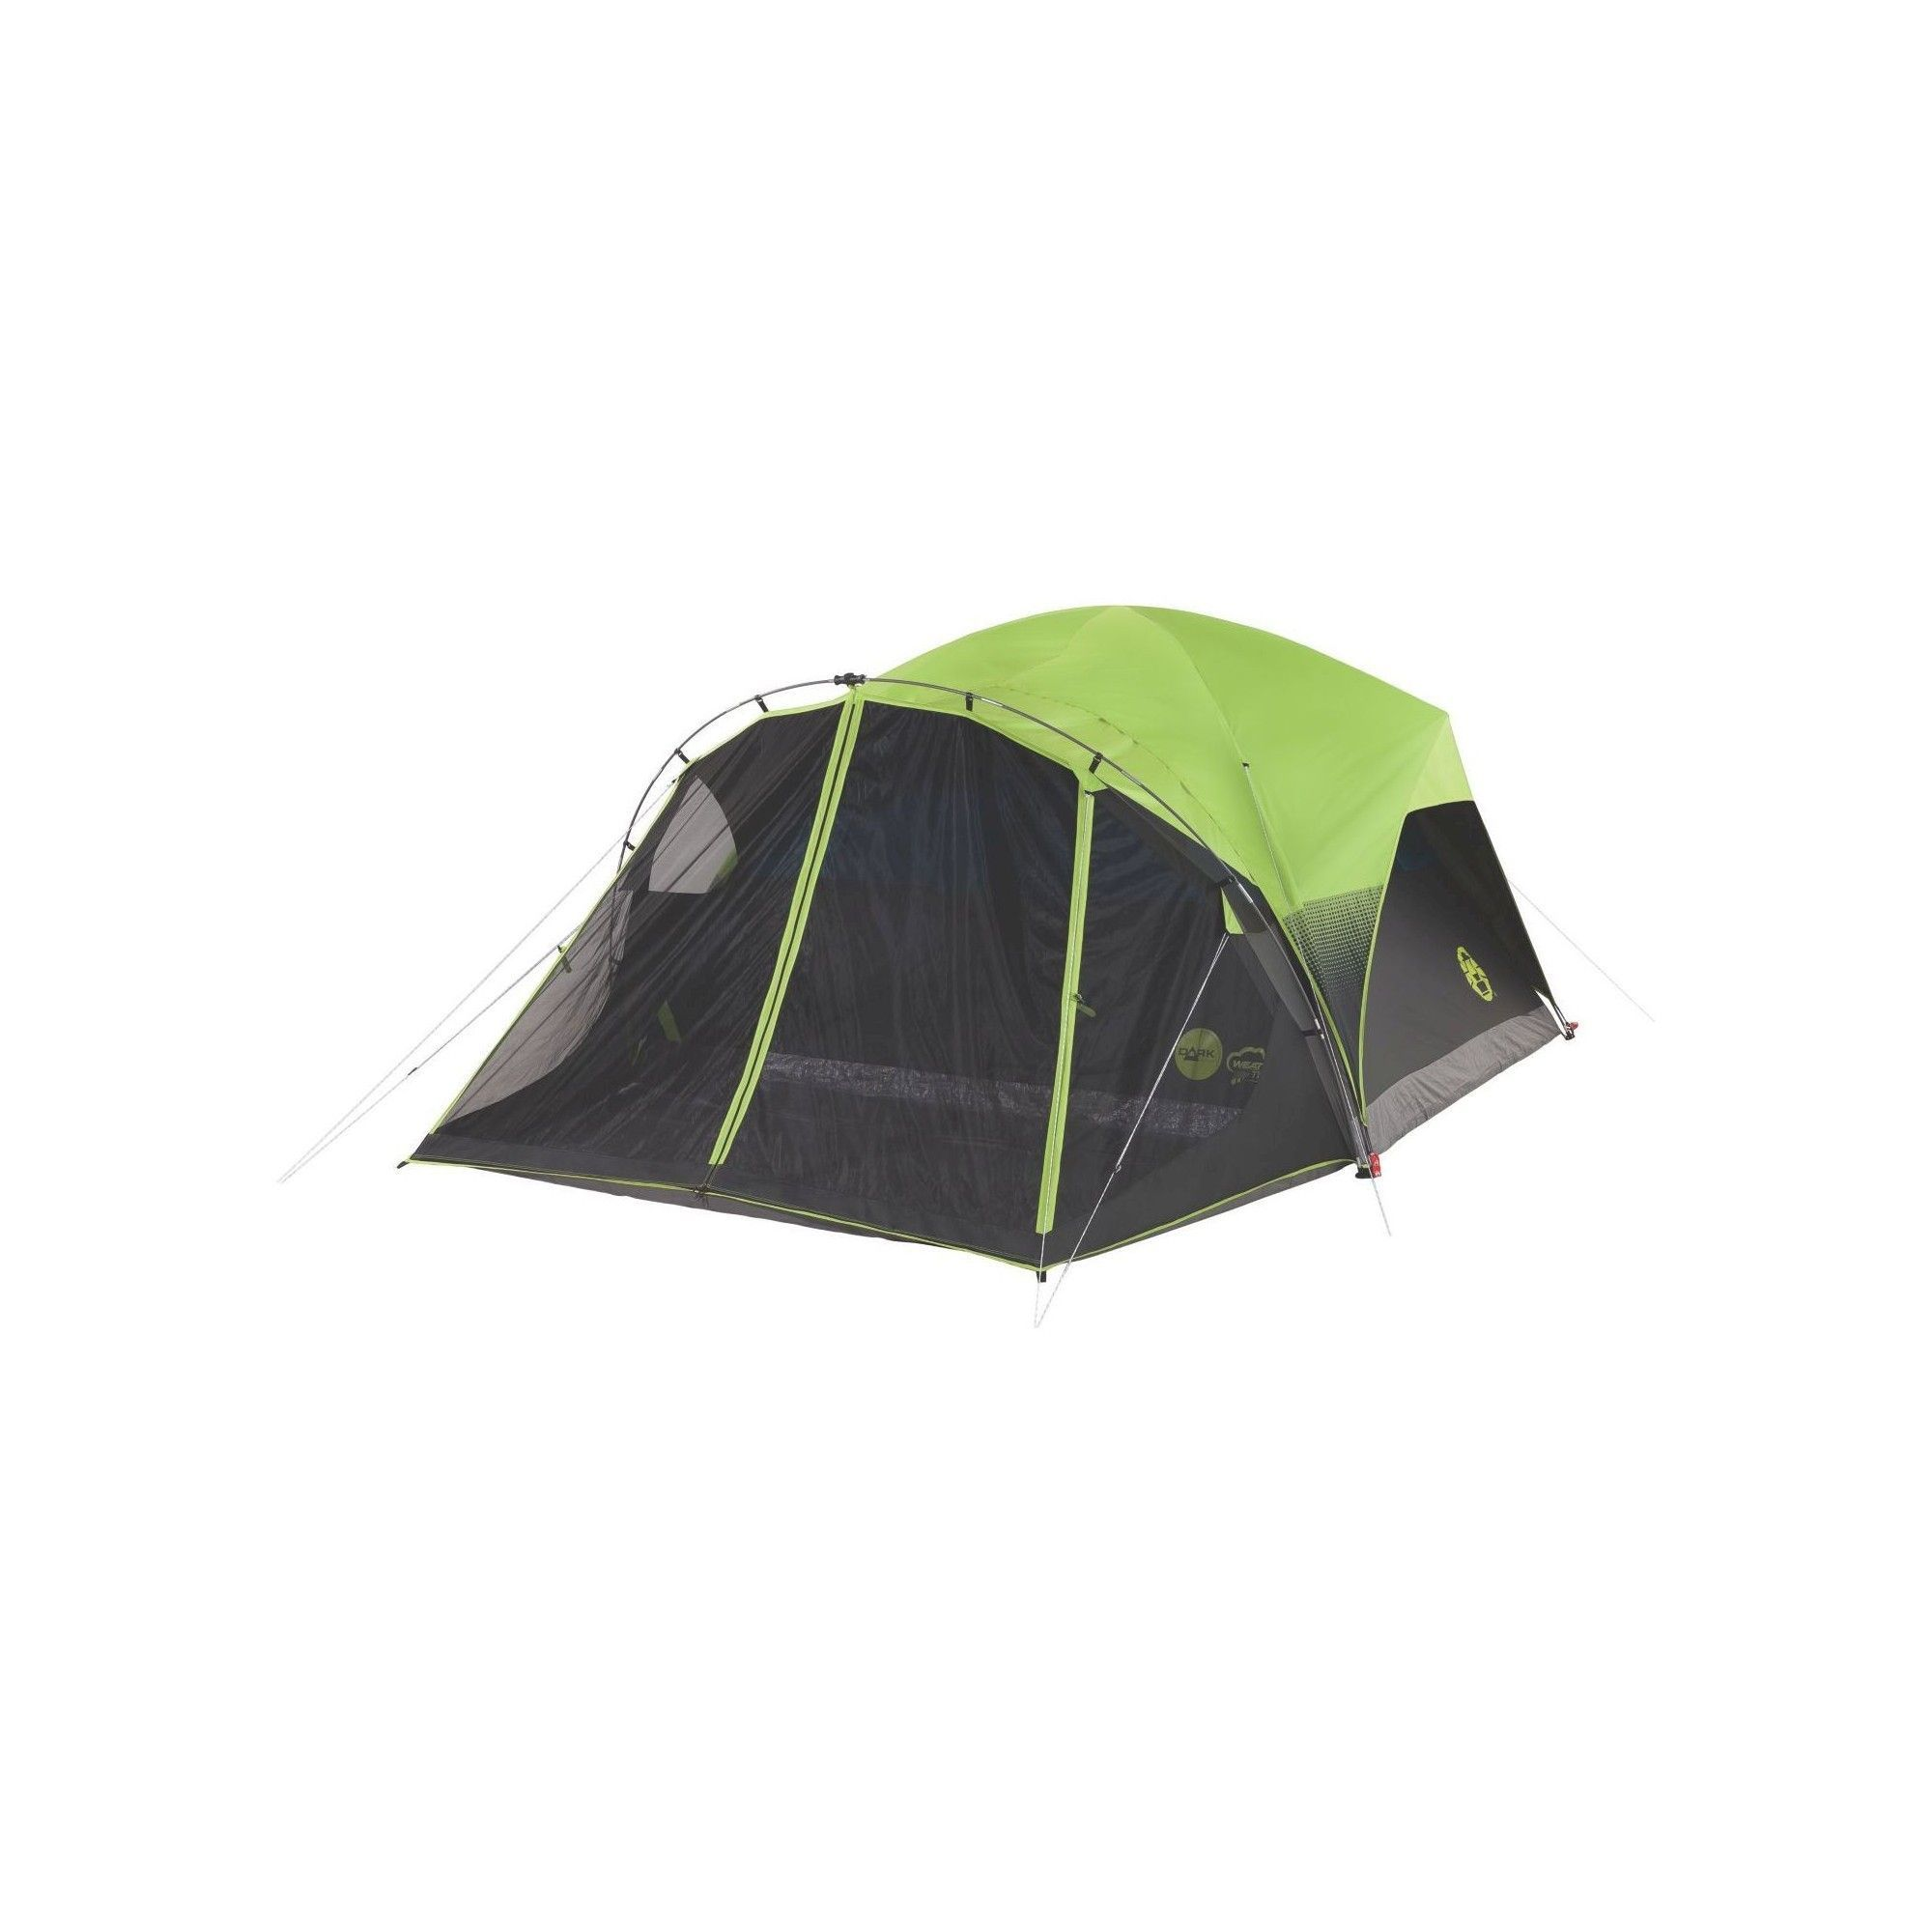 Coleman Carlsbad Fast Pitch 6-Person Dome Tent with Screen Room - Green Black  sc 1 st  Pinterest & Coleman Carlsbad Fast Pitch 6-Person Dome Tent with Screen Room ...